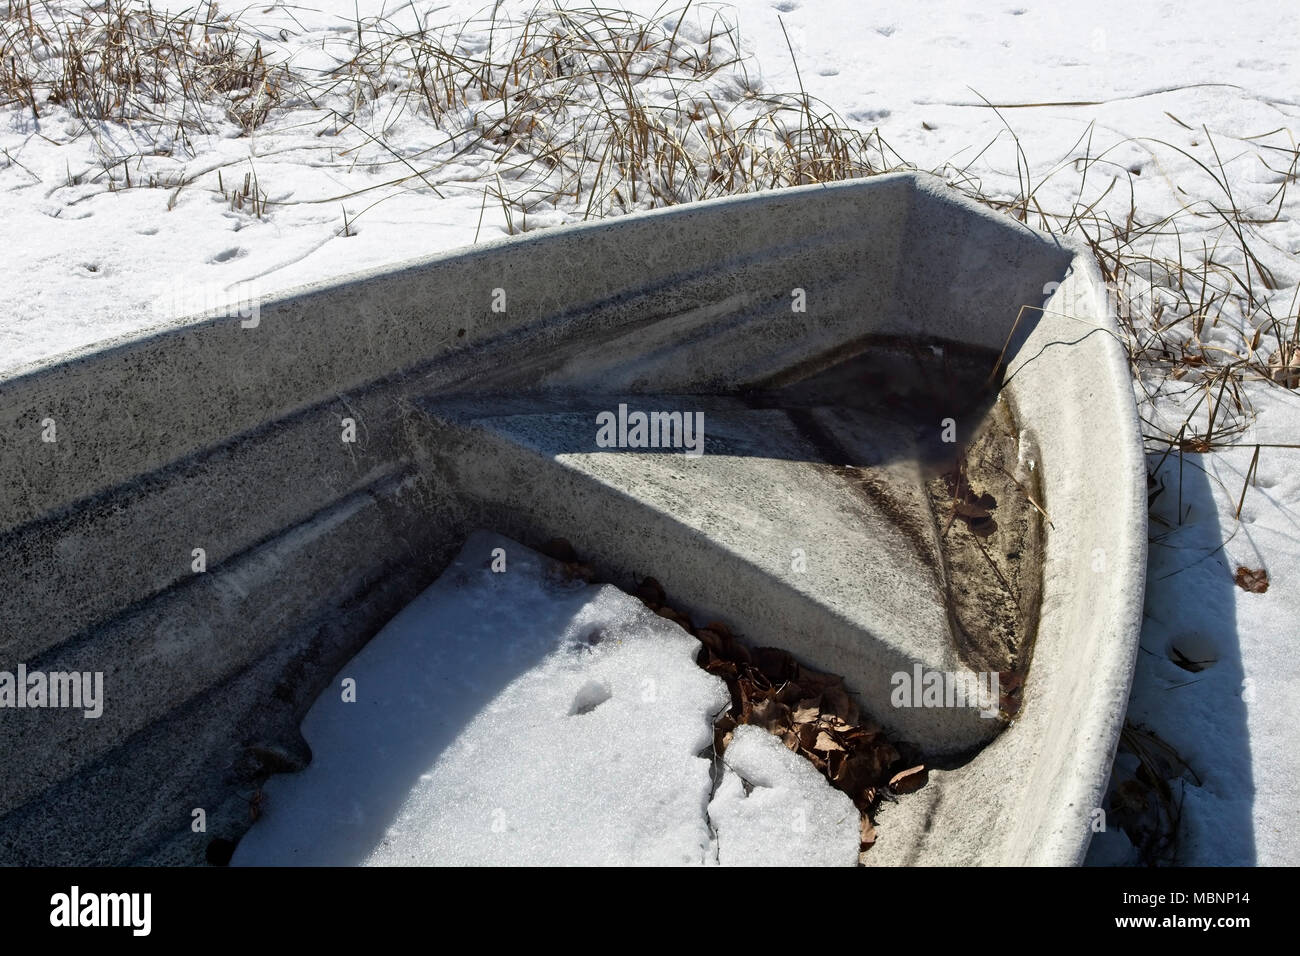 Fibreglass Dinghy Stock Photos & Fibreglass Dinghy Stock Images - Alamy